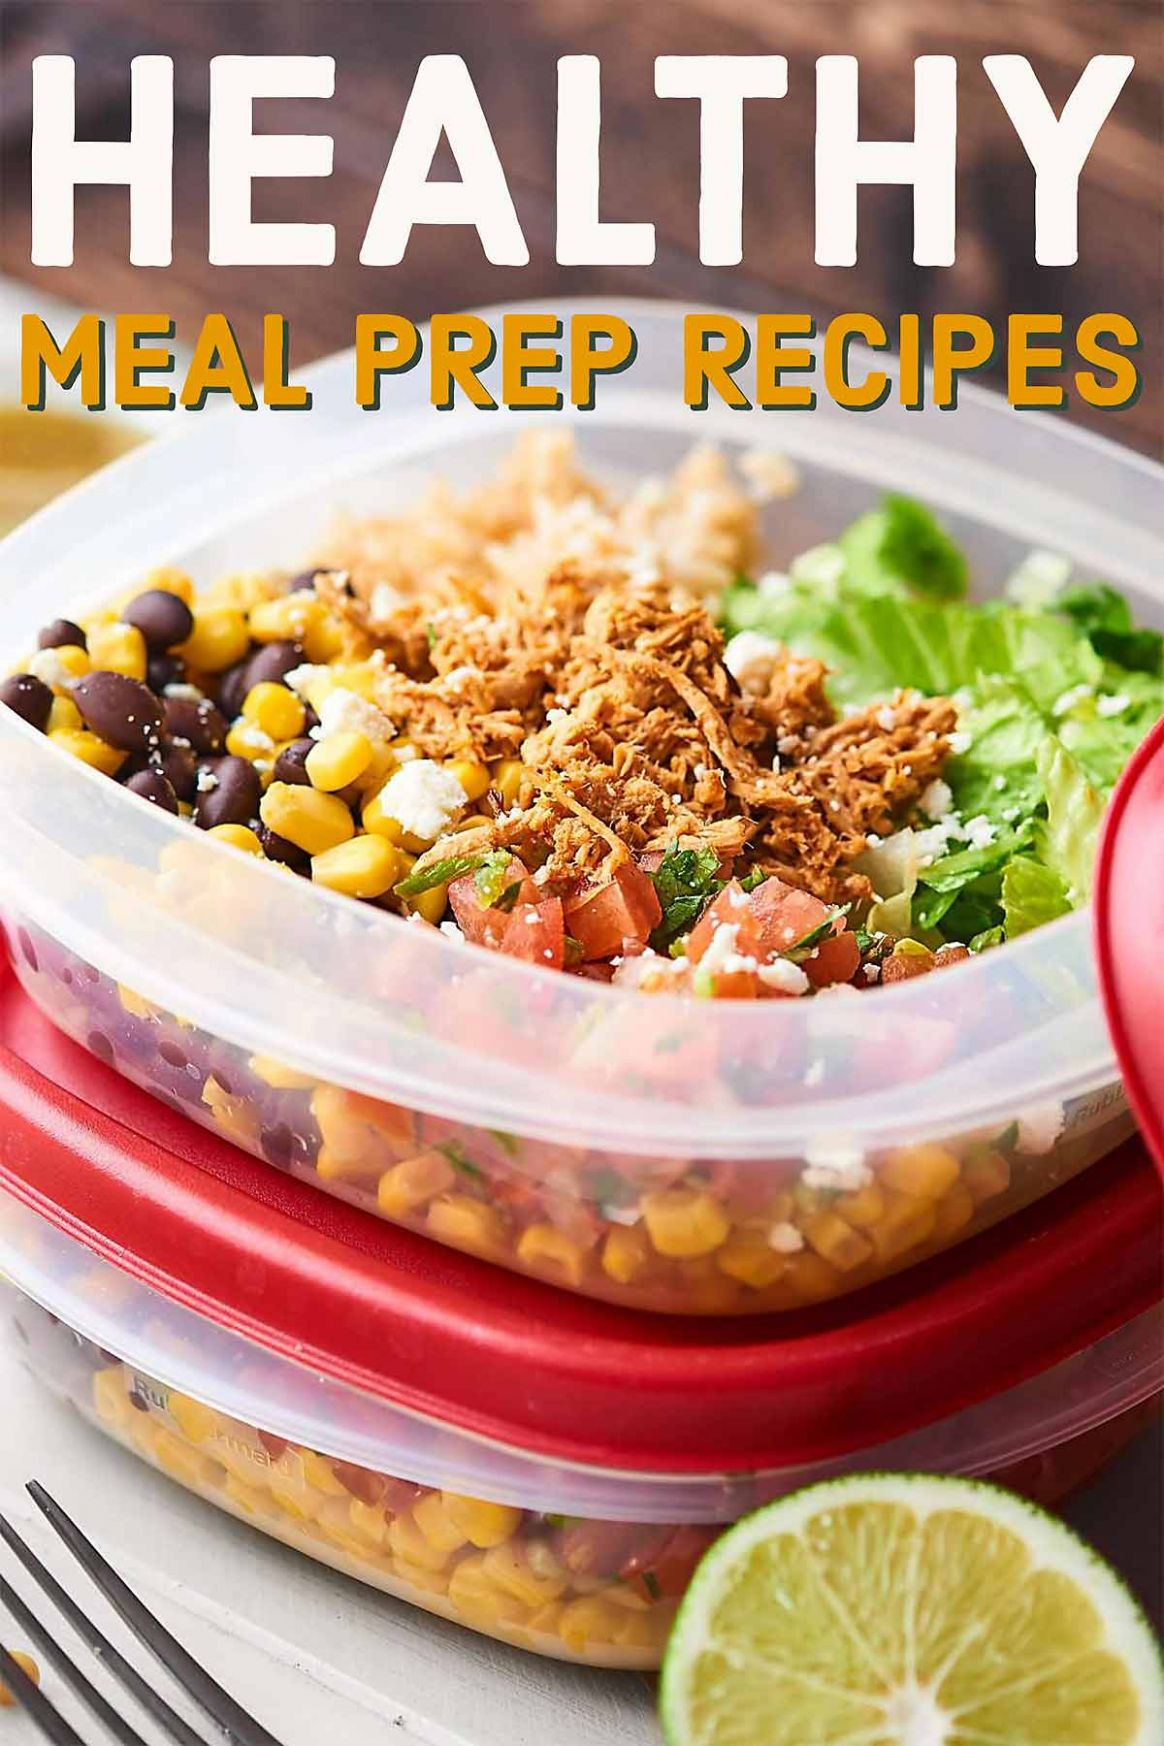 Healthy Meal Prep Recipes 10 - Quick, Easy, Healthy, Delicious! - Food Recipes Easy Healthy